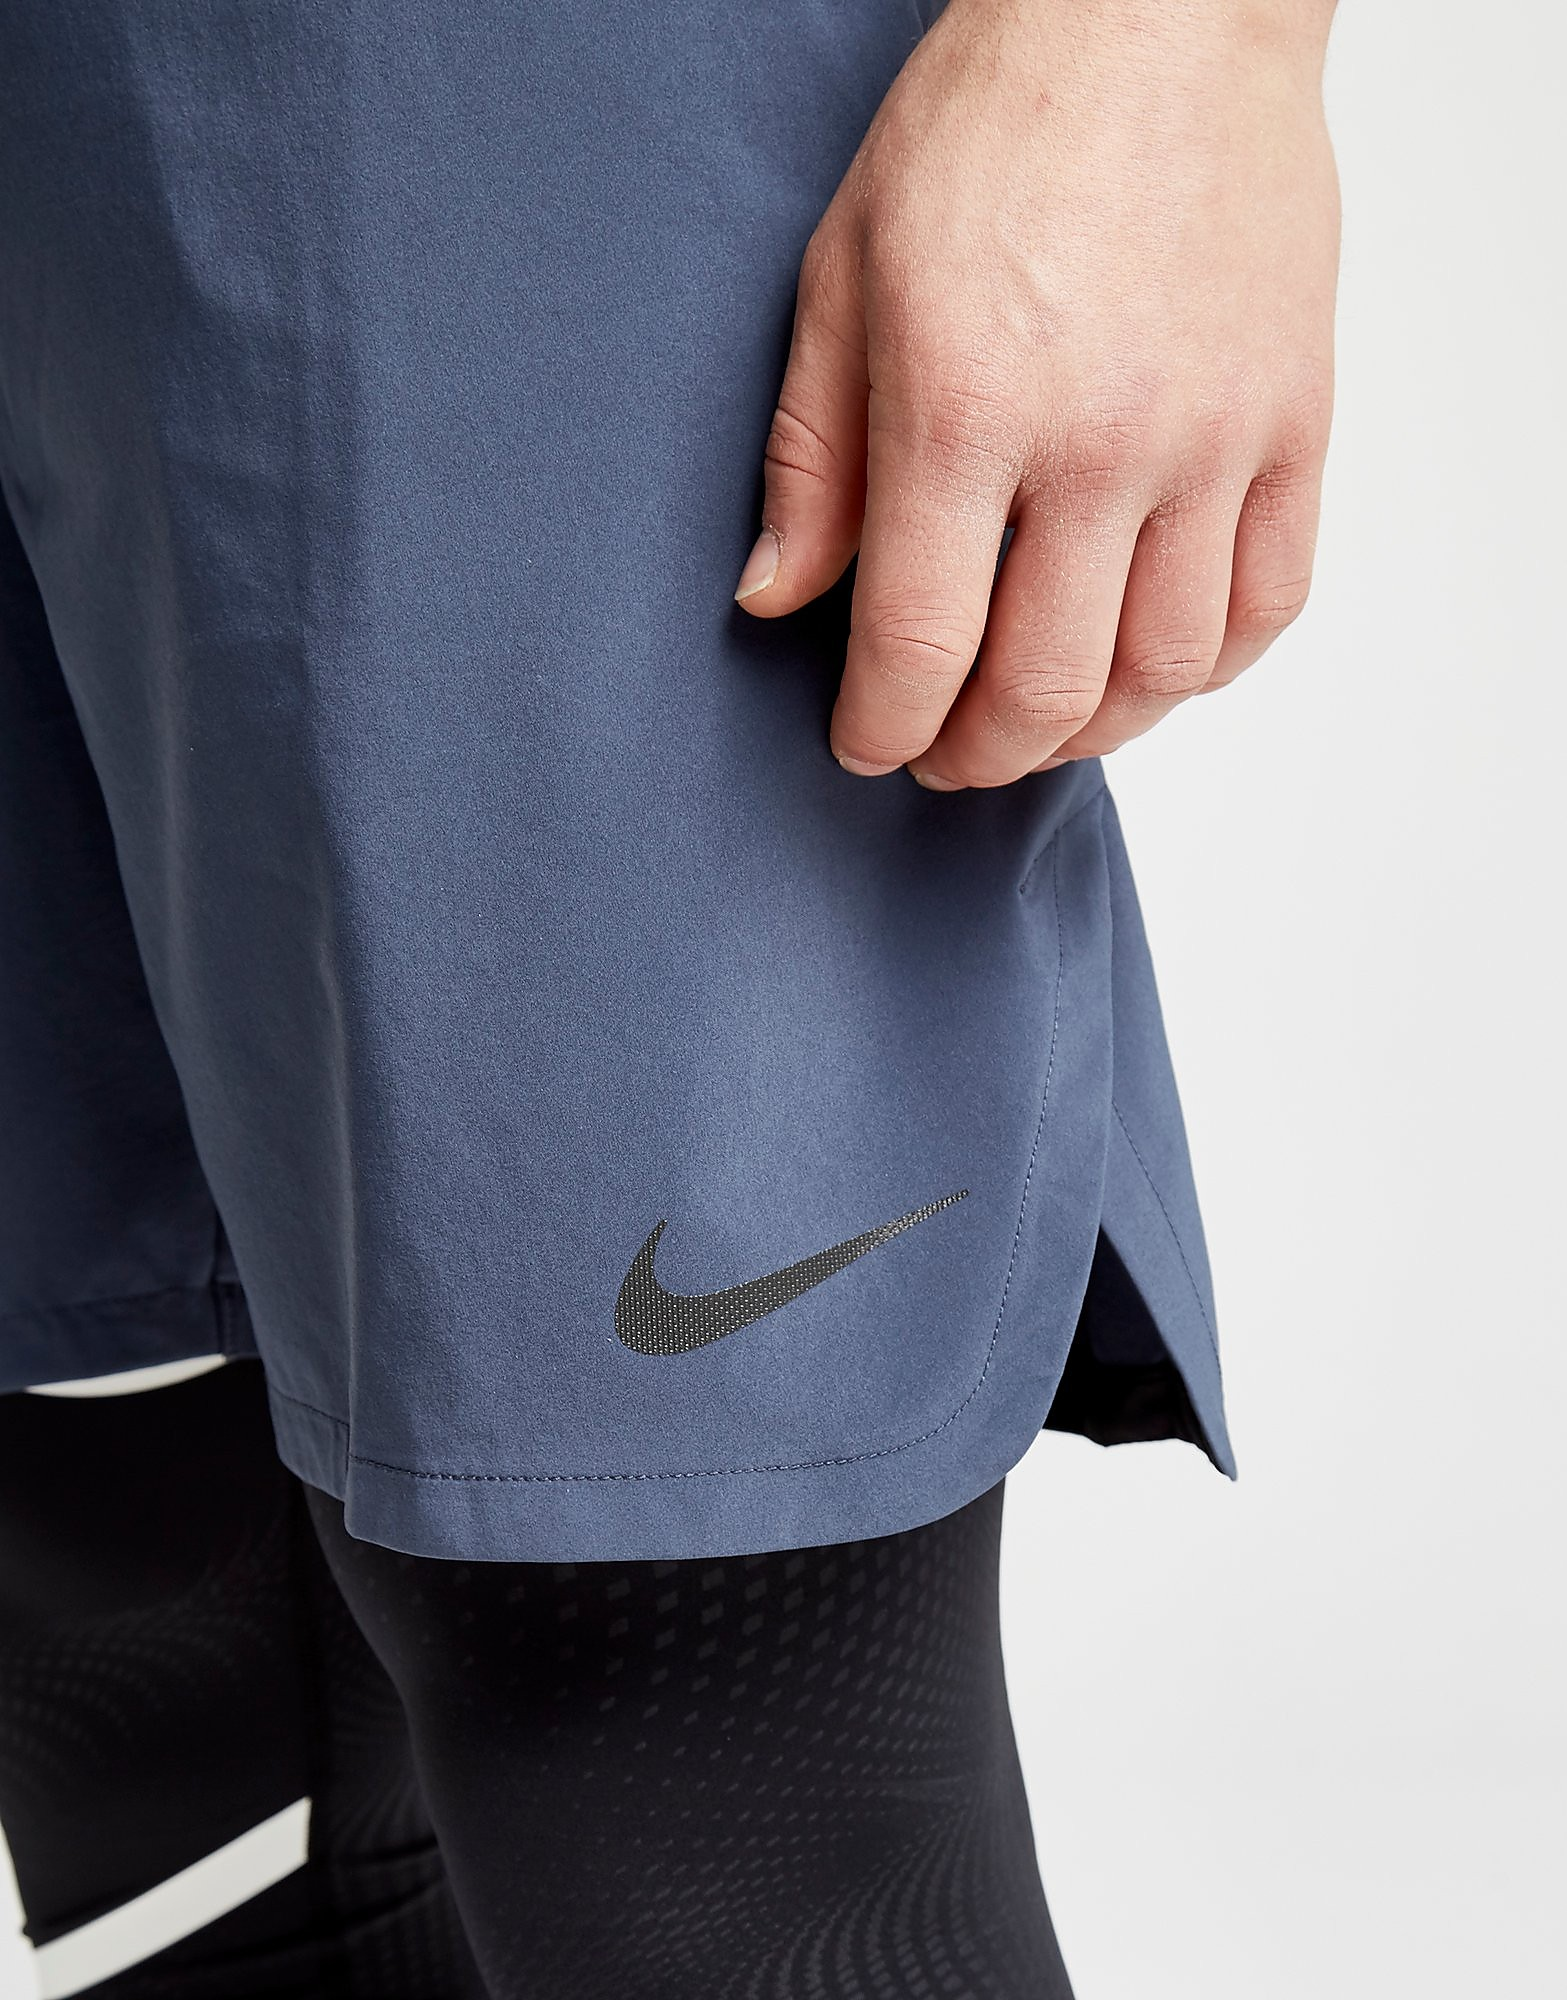 Nike Flex Vented Shorts 2.0